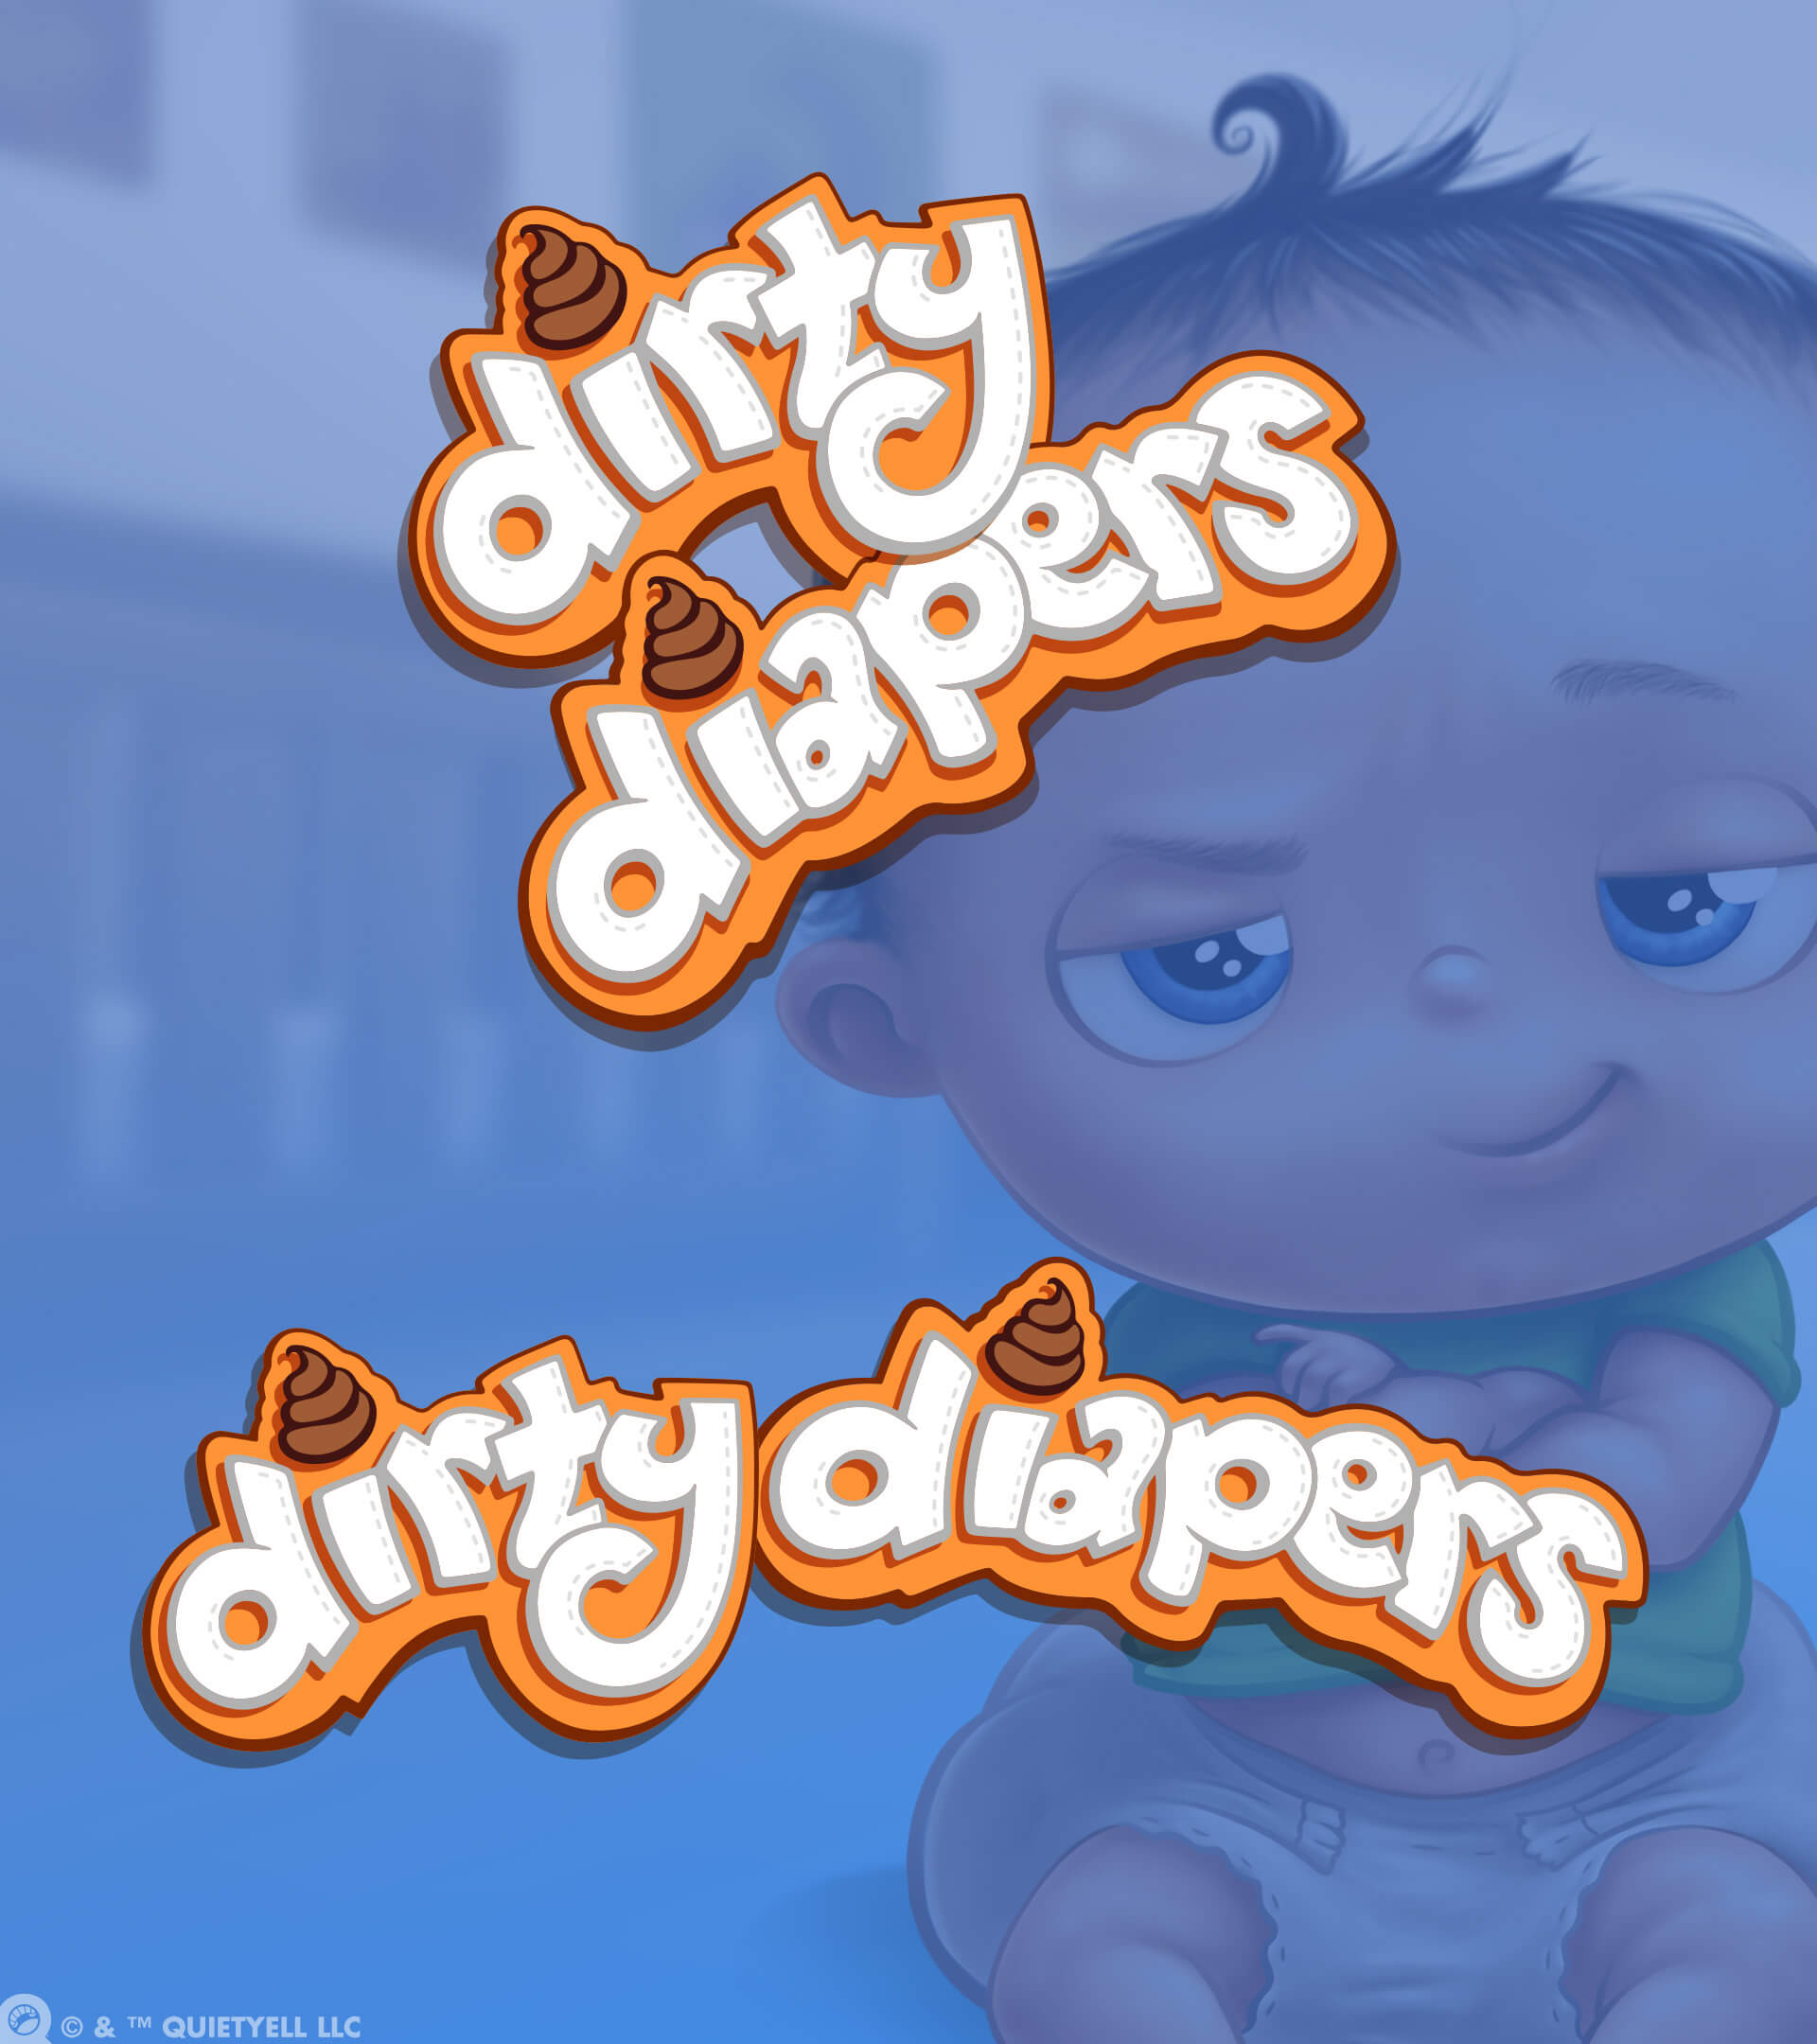 Dirty Diapers Board Game Logo for Goliath Games by Scott Monaco of QuietYell™ | www.QuietYell.com